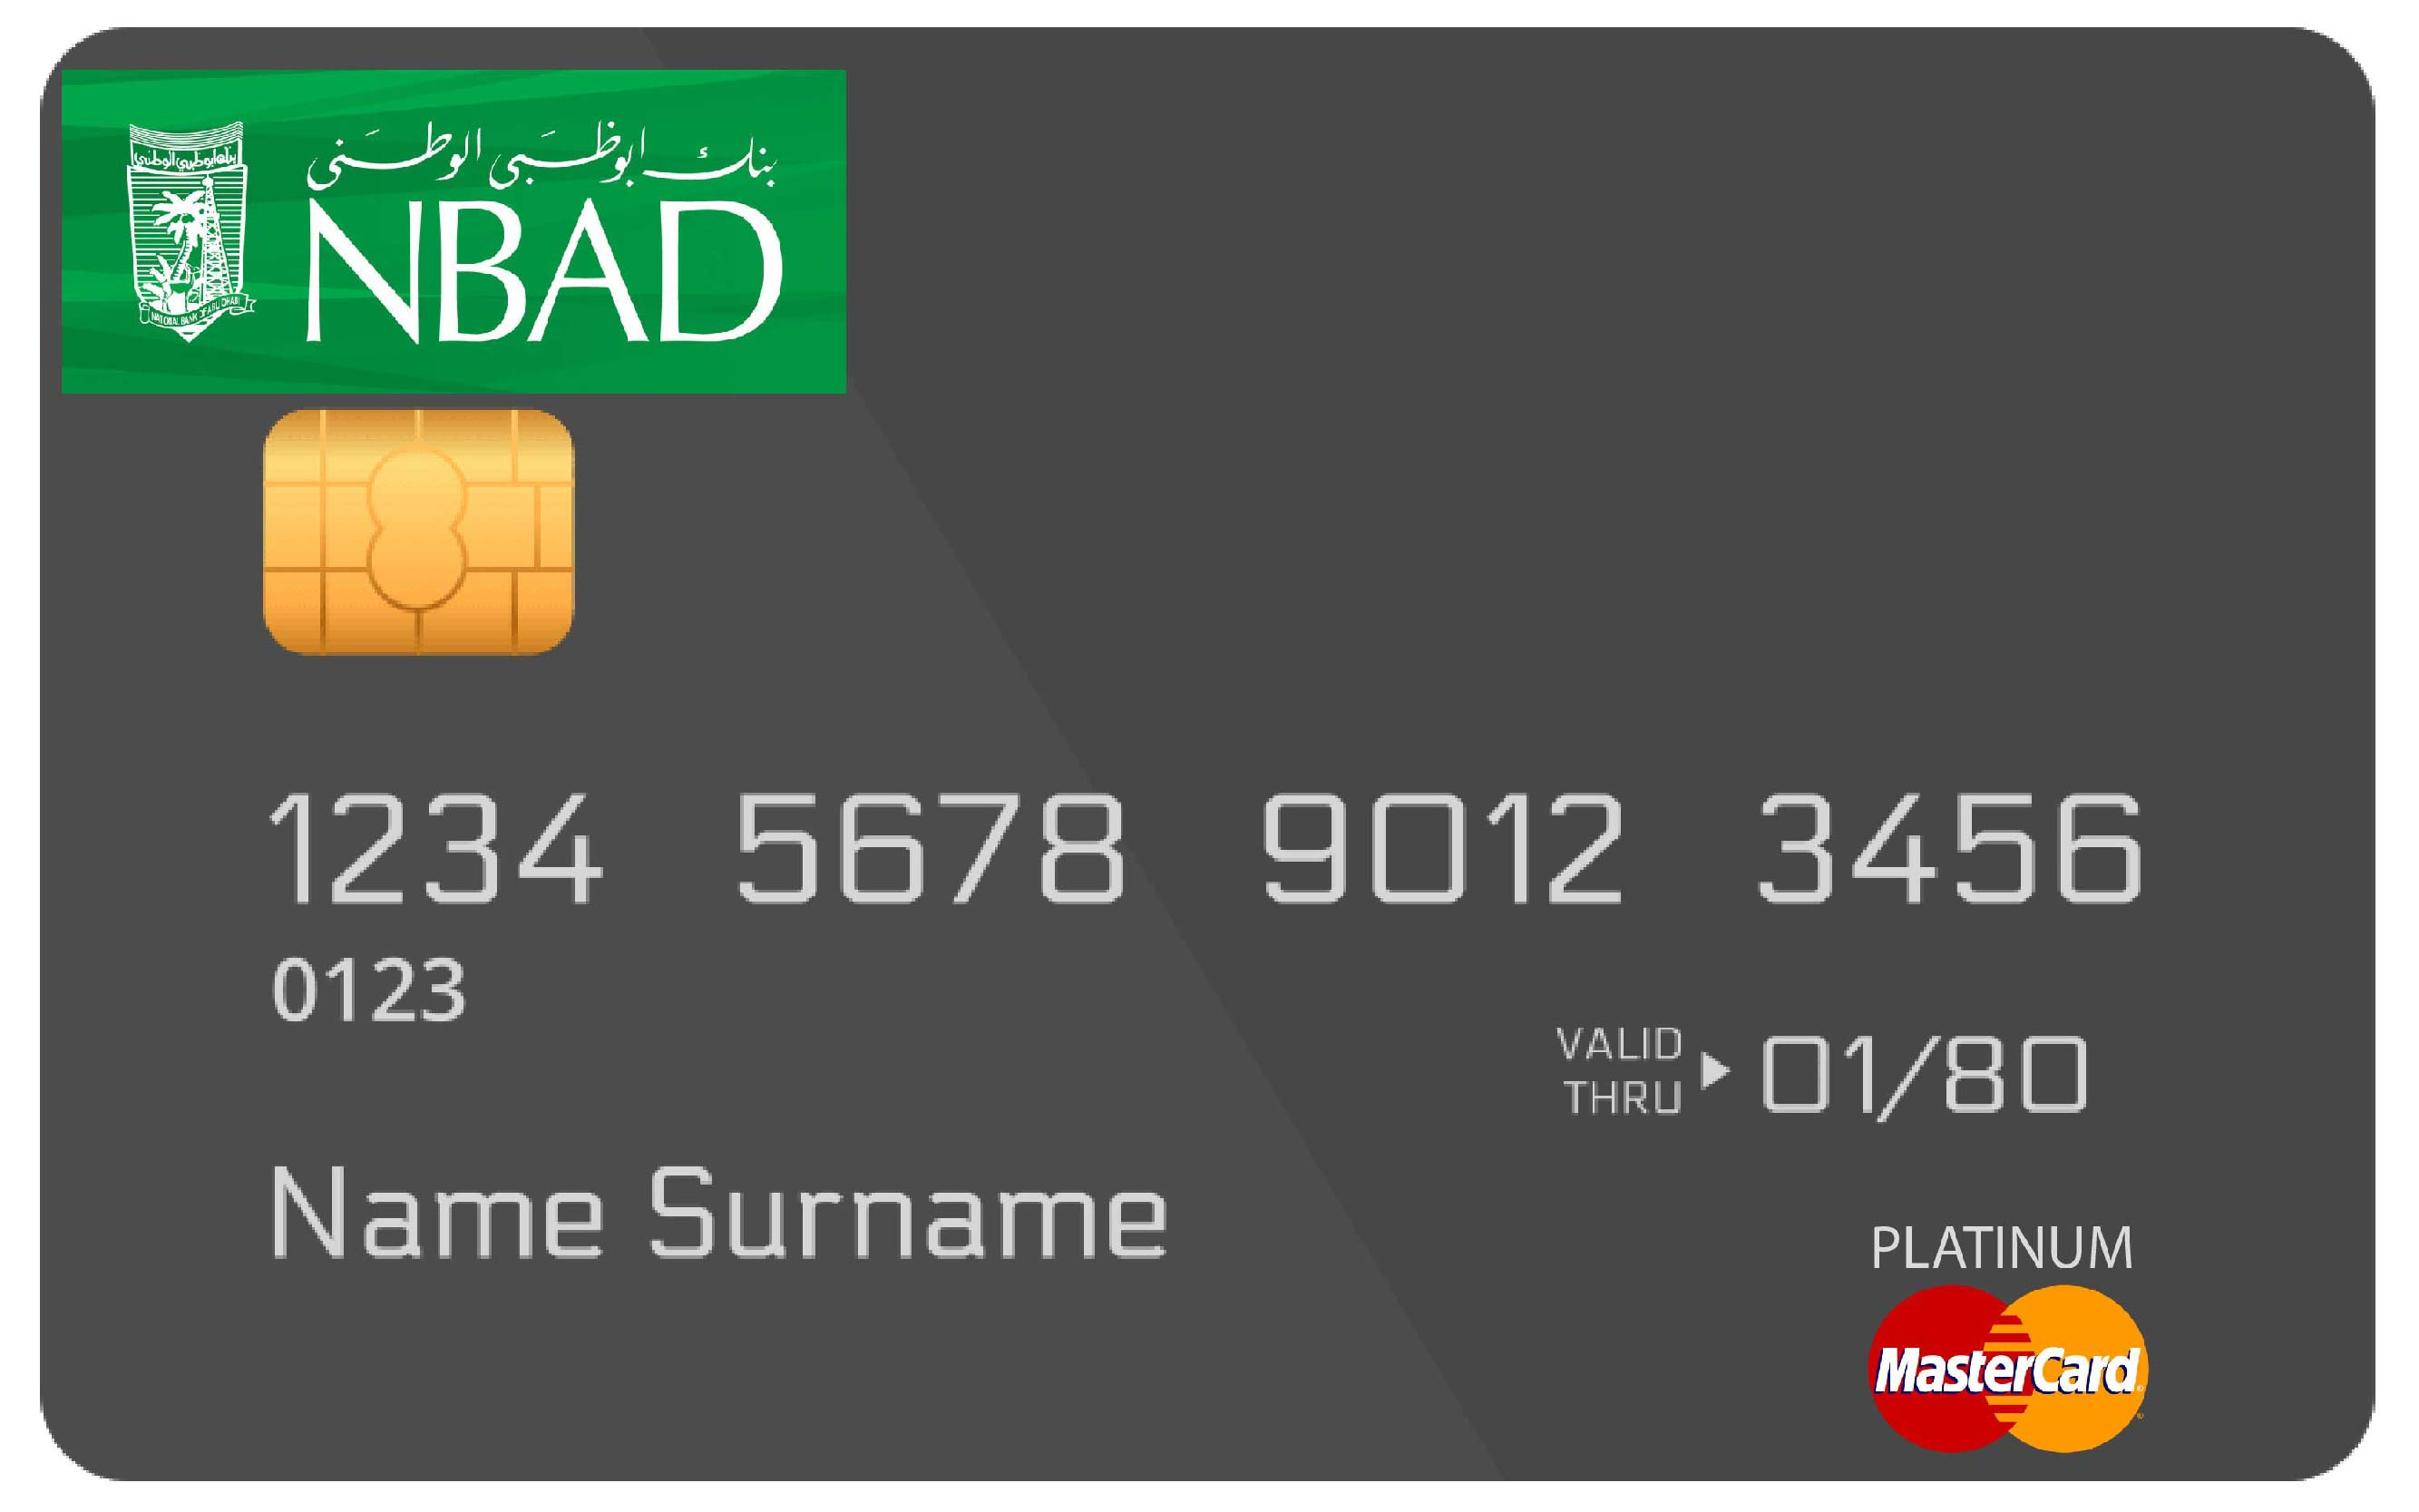 nbad platinum card